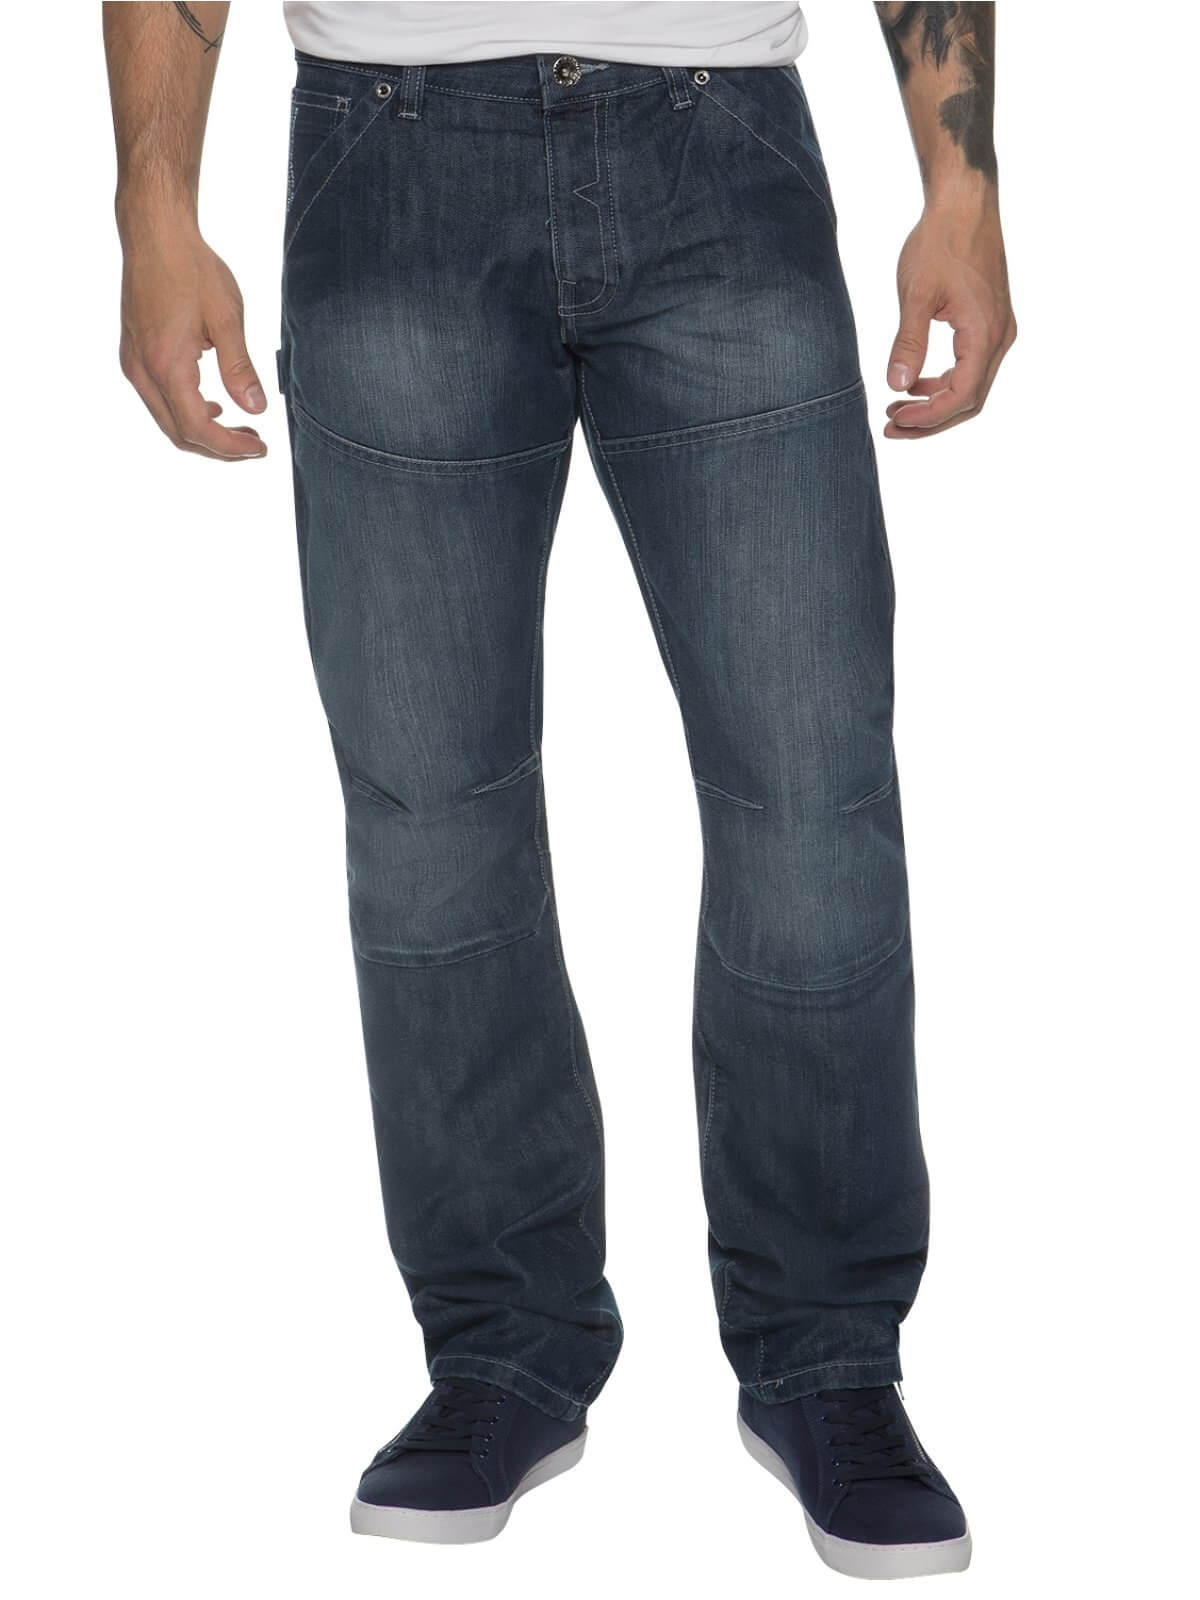 Mens Midwash Straight Fit Denim Jeans EZ243 | Enzo Designer Menswear